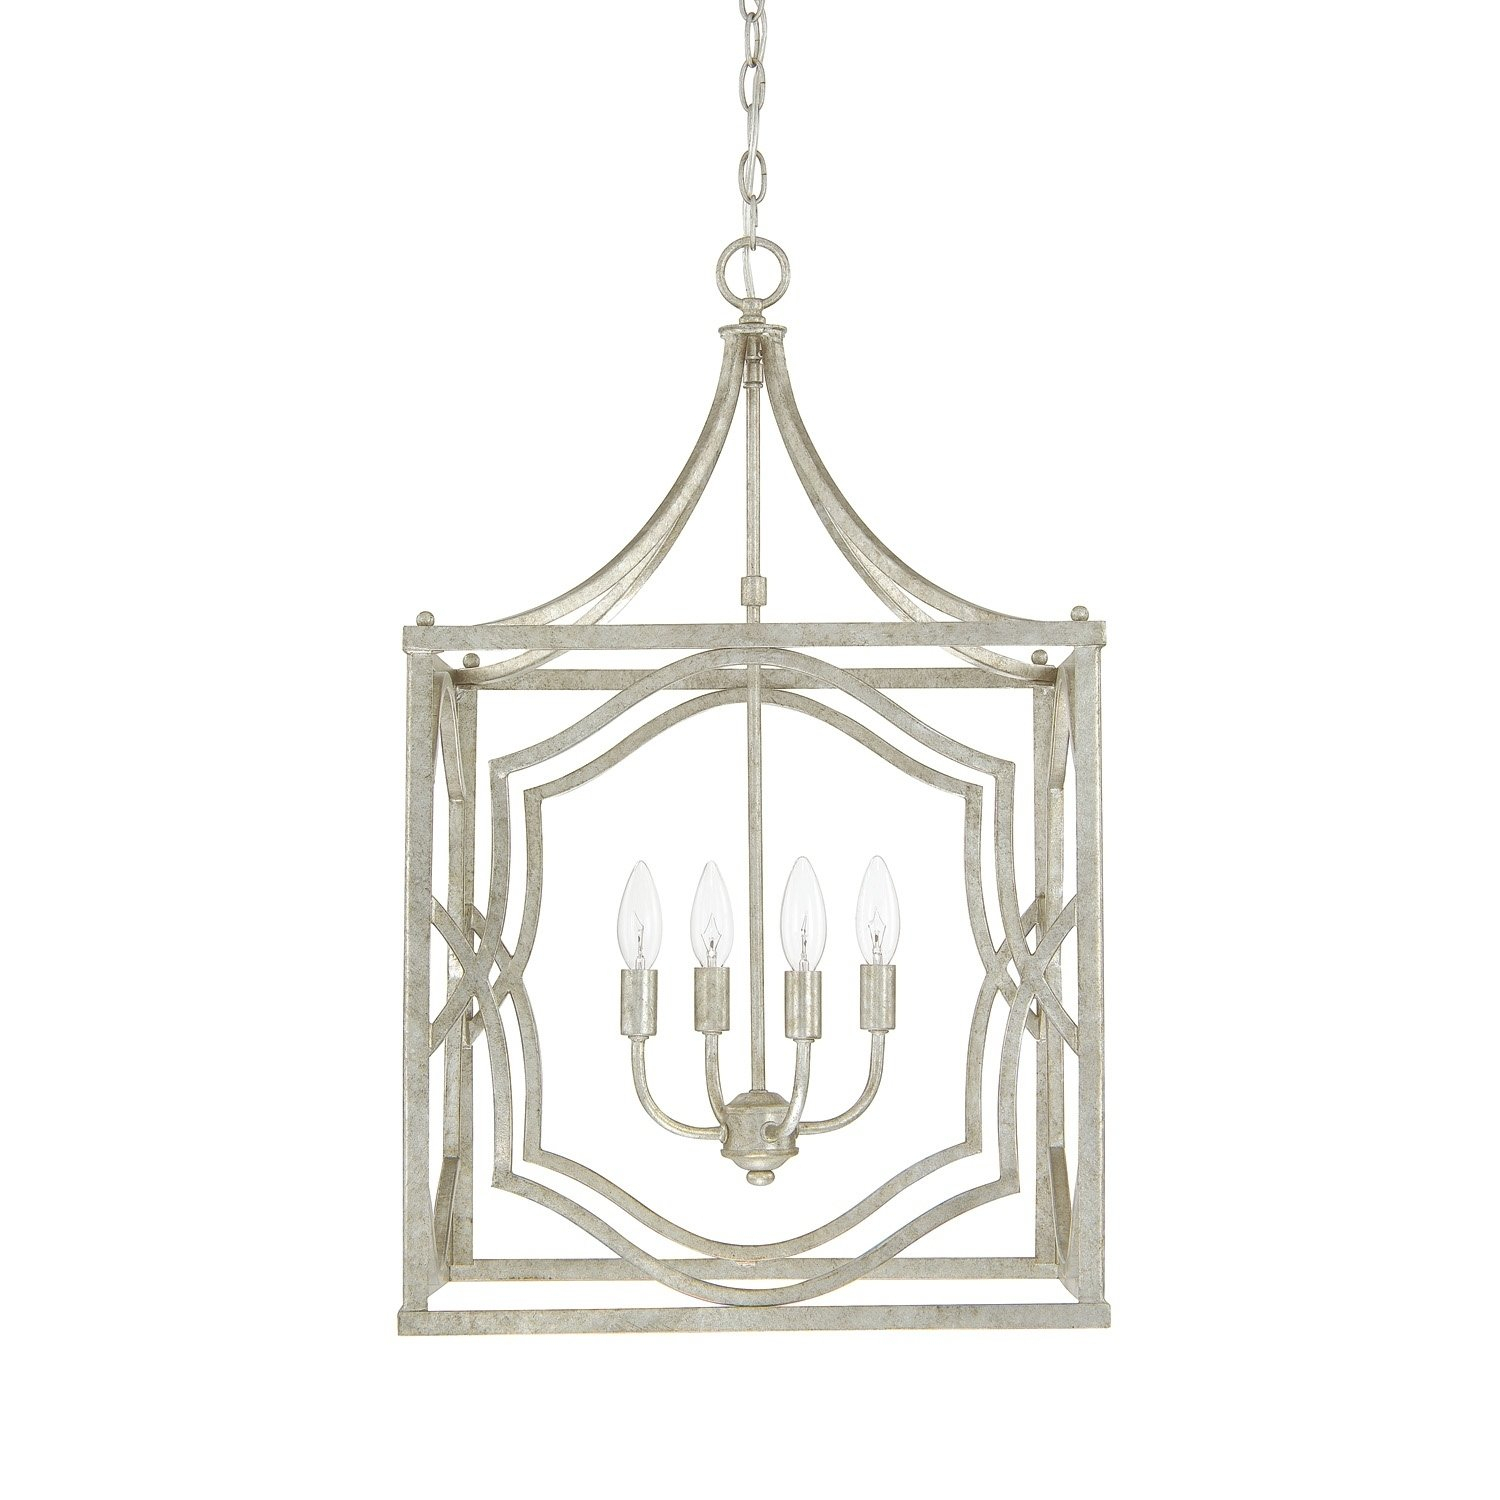 Blakely 4 Light Antique Silver Foyer Fixture – Antique In Oriana 4 Light Single Geometric Chandeliers (View 16 of 30)